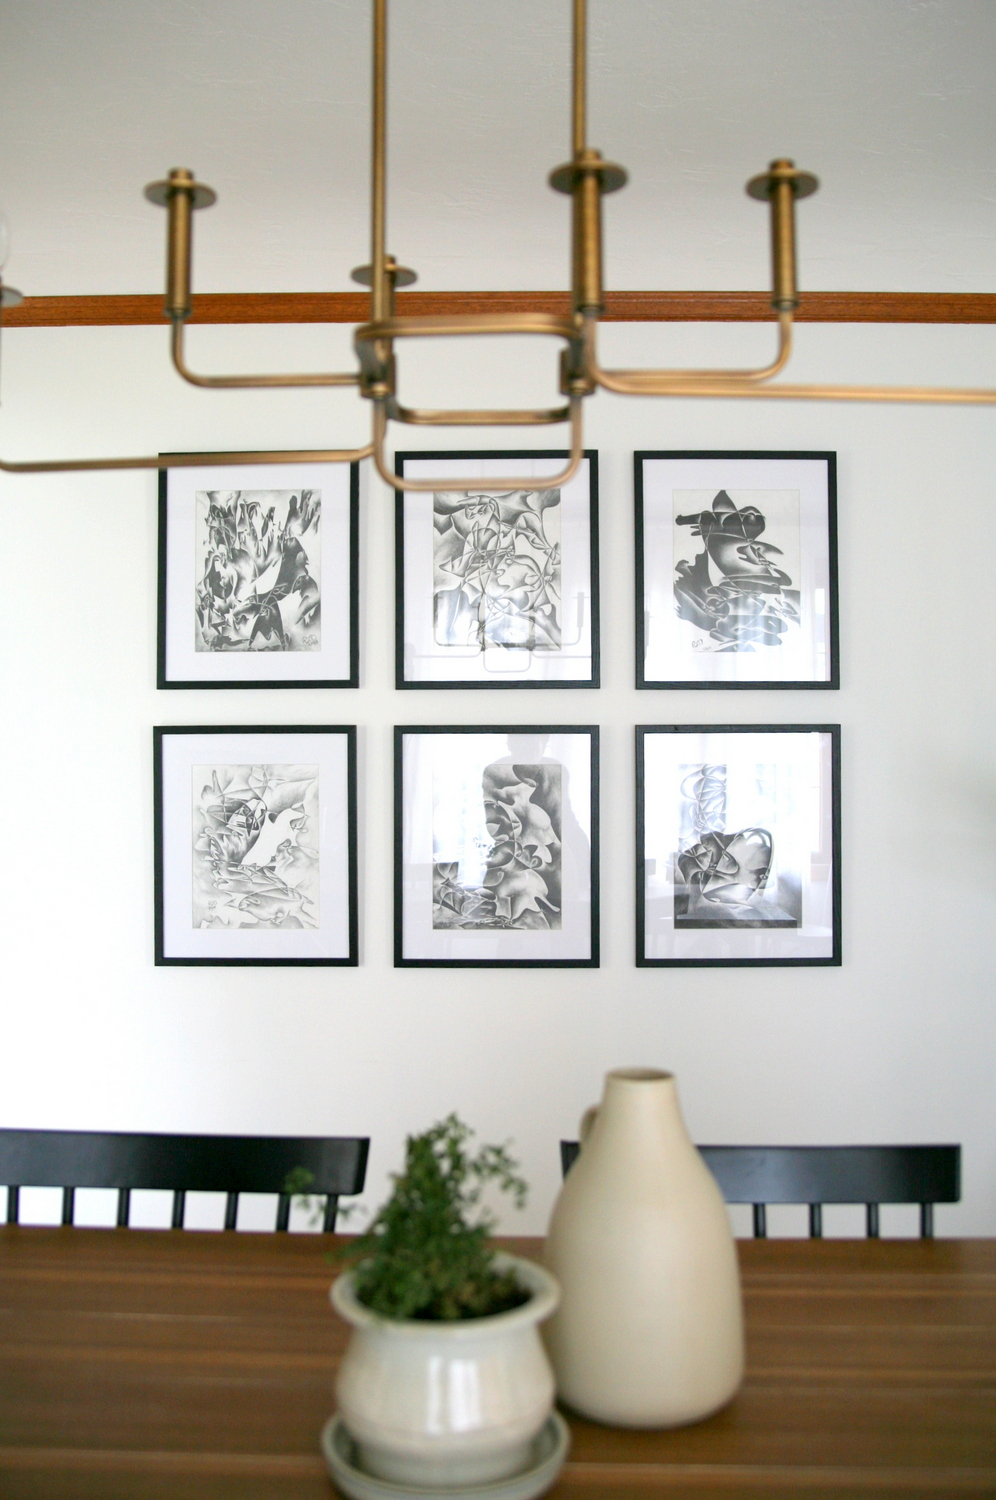 How To Measure And Hang A Grid Gallery Wall Dining Room Art With Affordable Custom Frames Hardware Create Enjoy